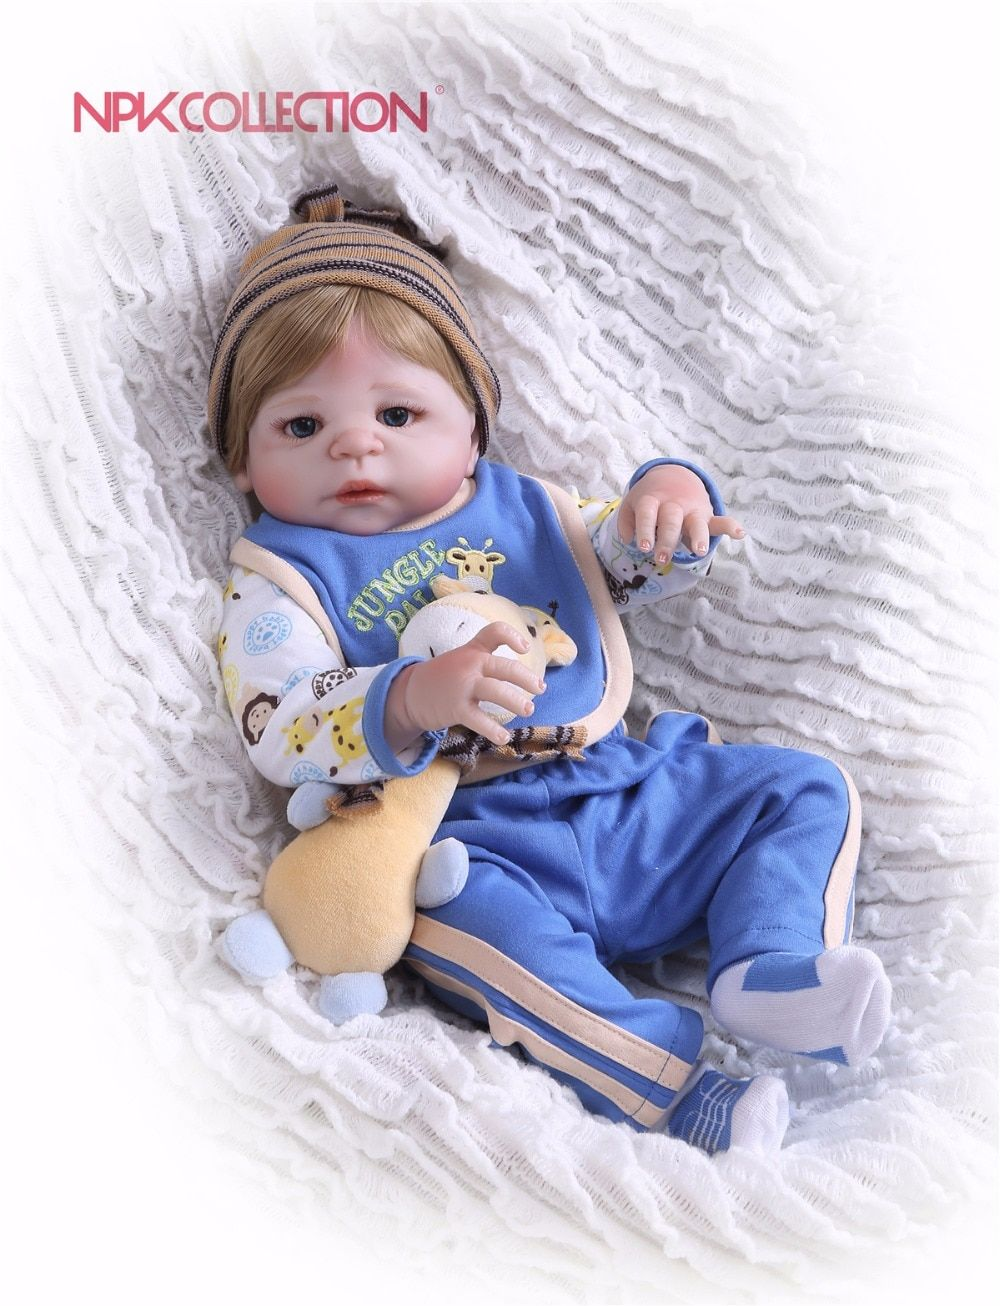 NPKCOLLECTION New design Doll Full Silicone Body Lifelike Bebe Reborn Prince Doll Handmade Baby Toy Xmas Gifts